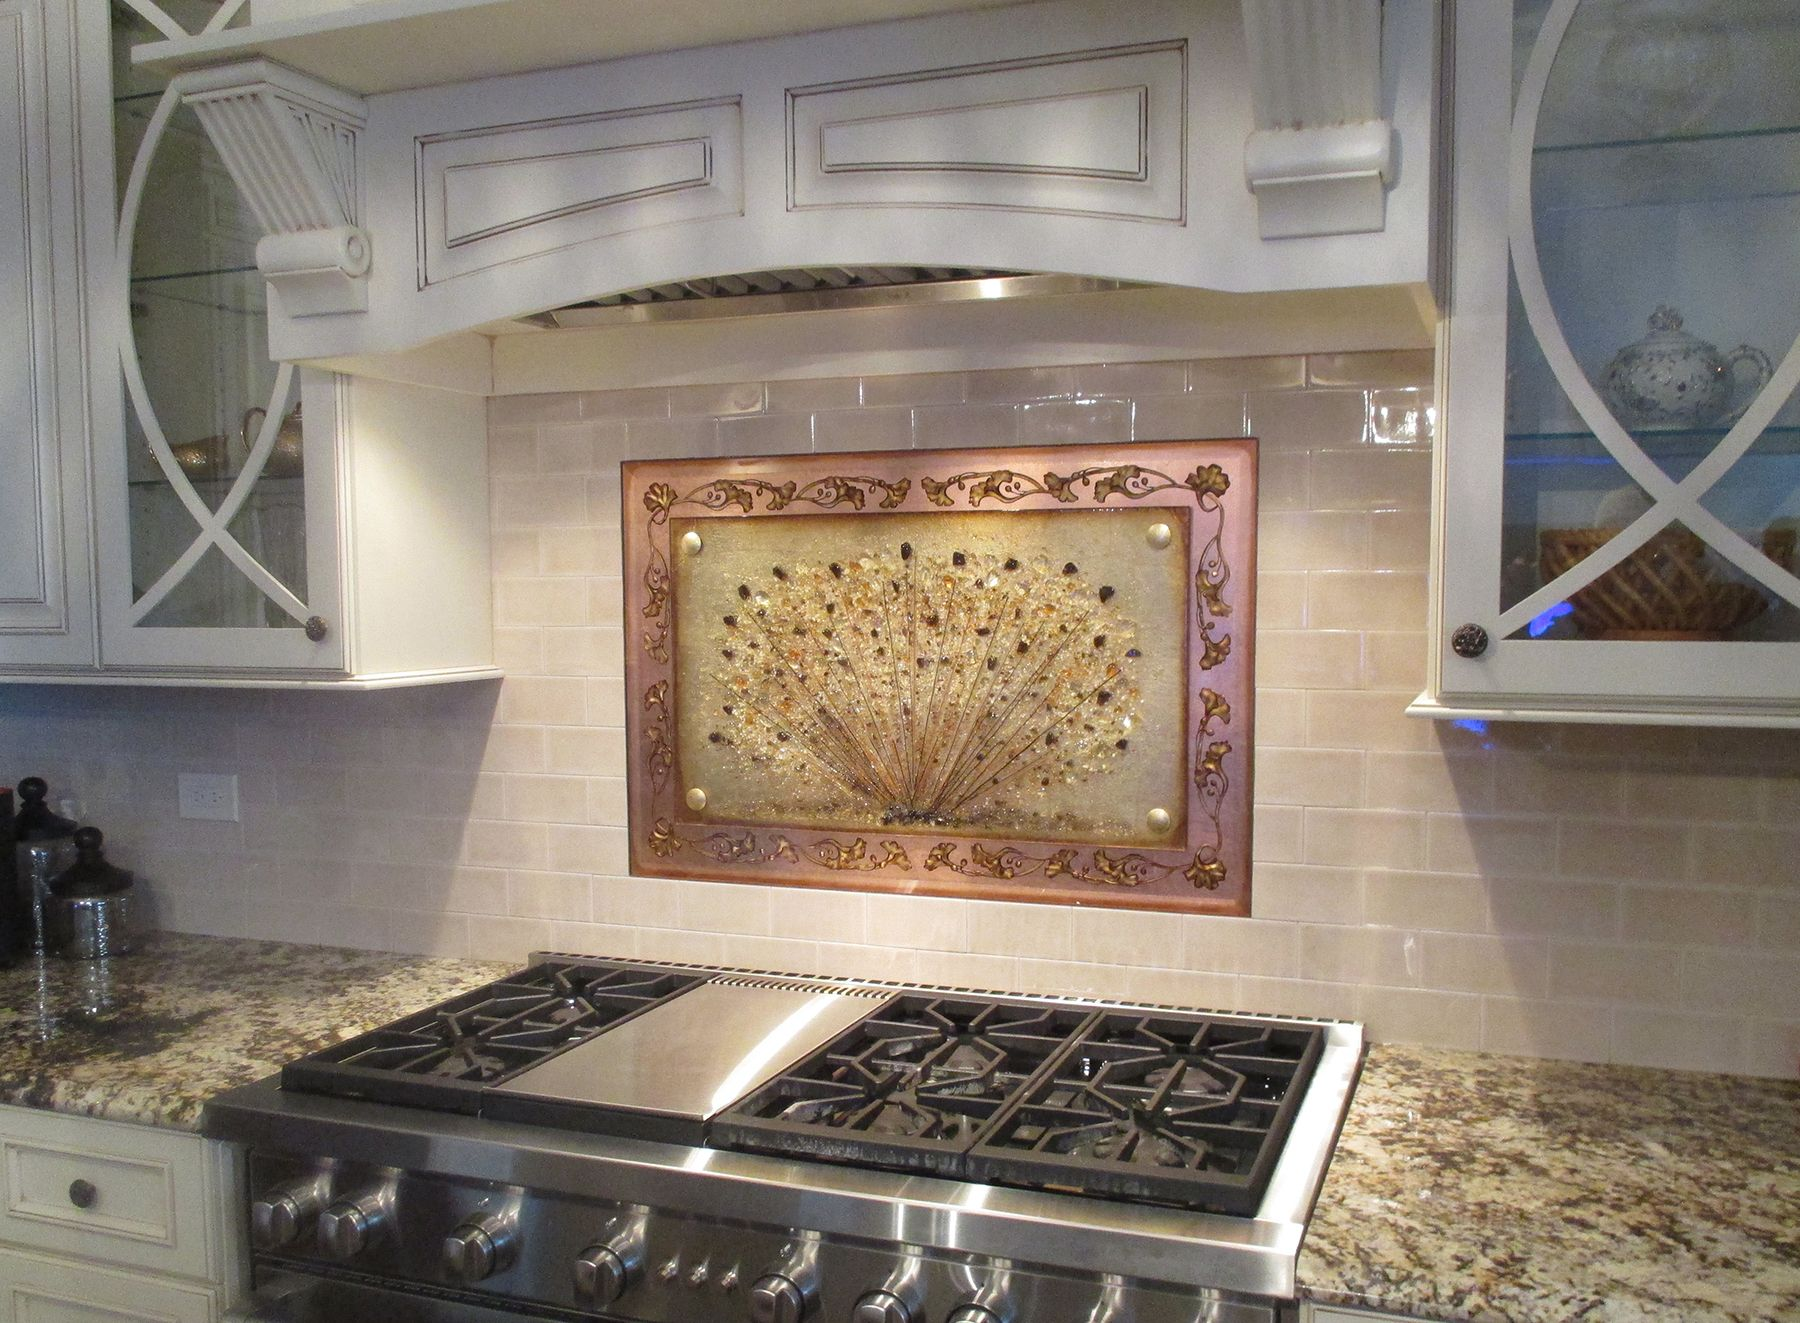 Custom Fused Glass backsplash with Carved and Backpainted border